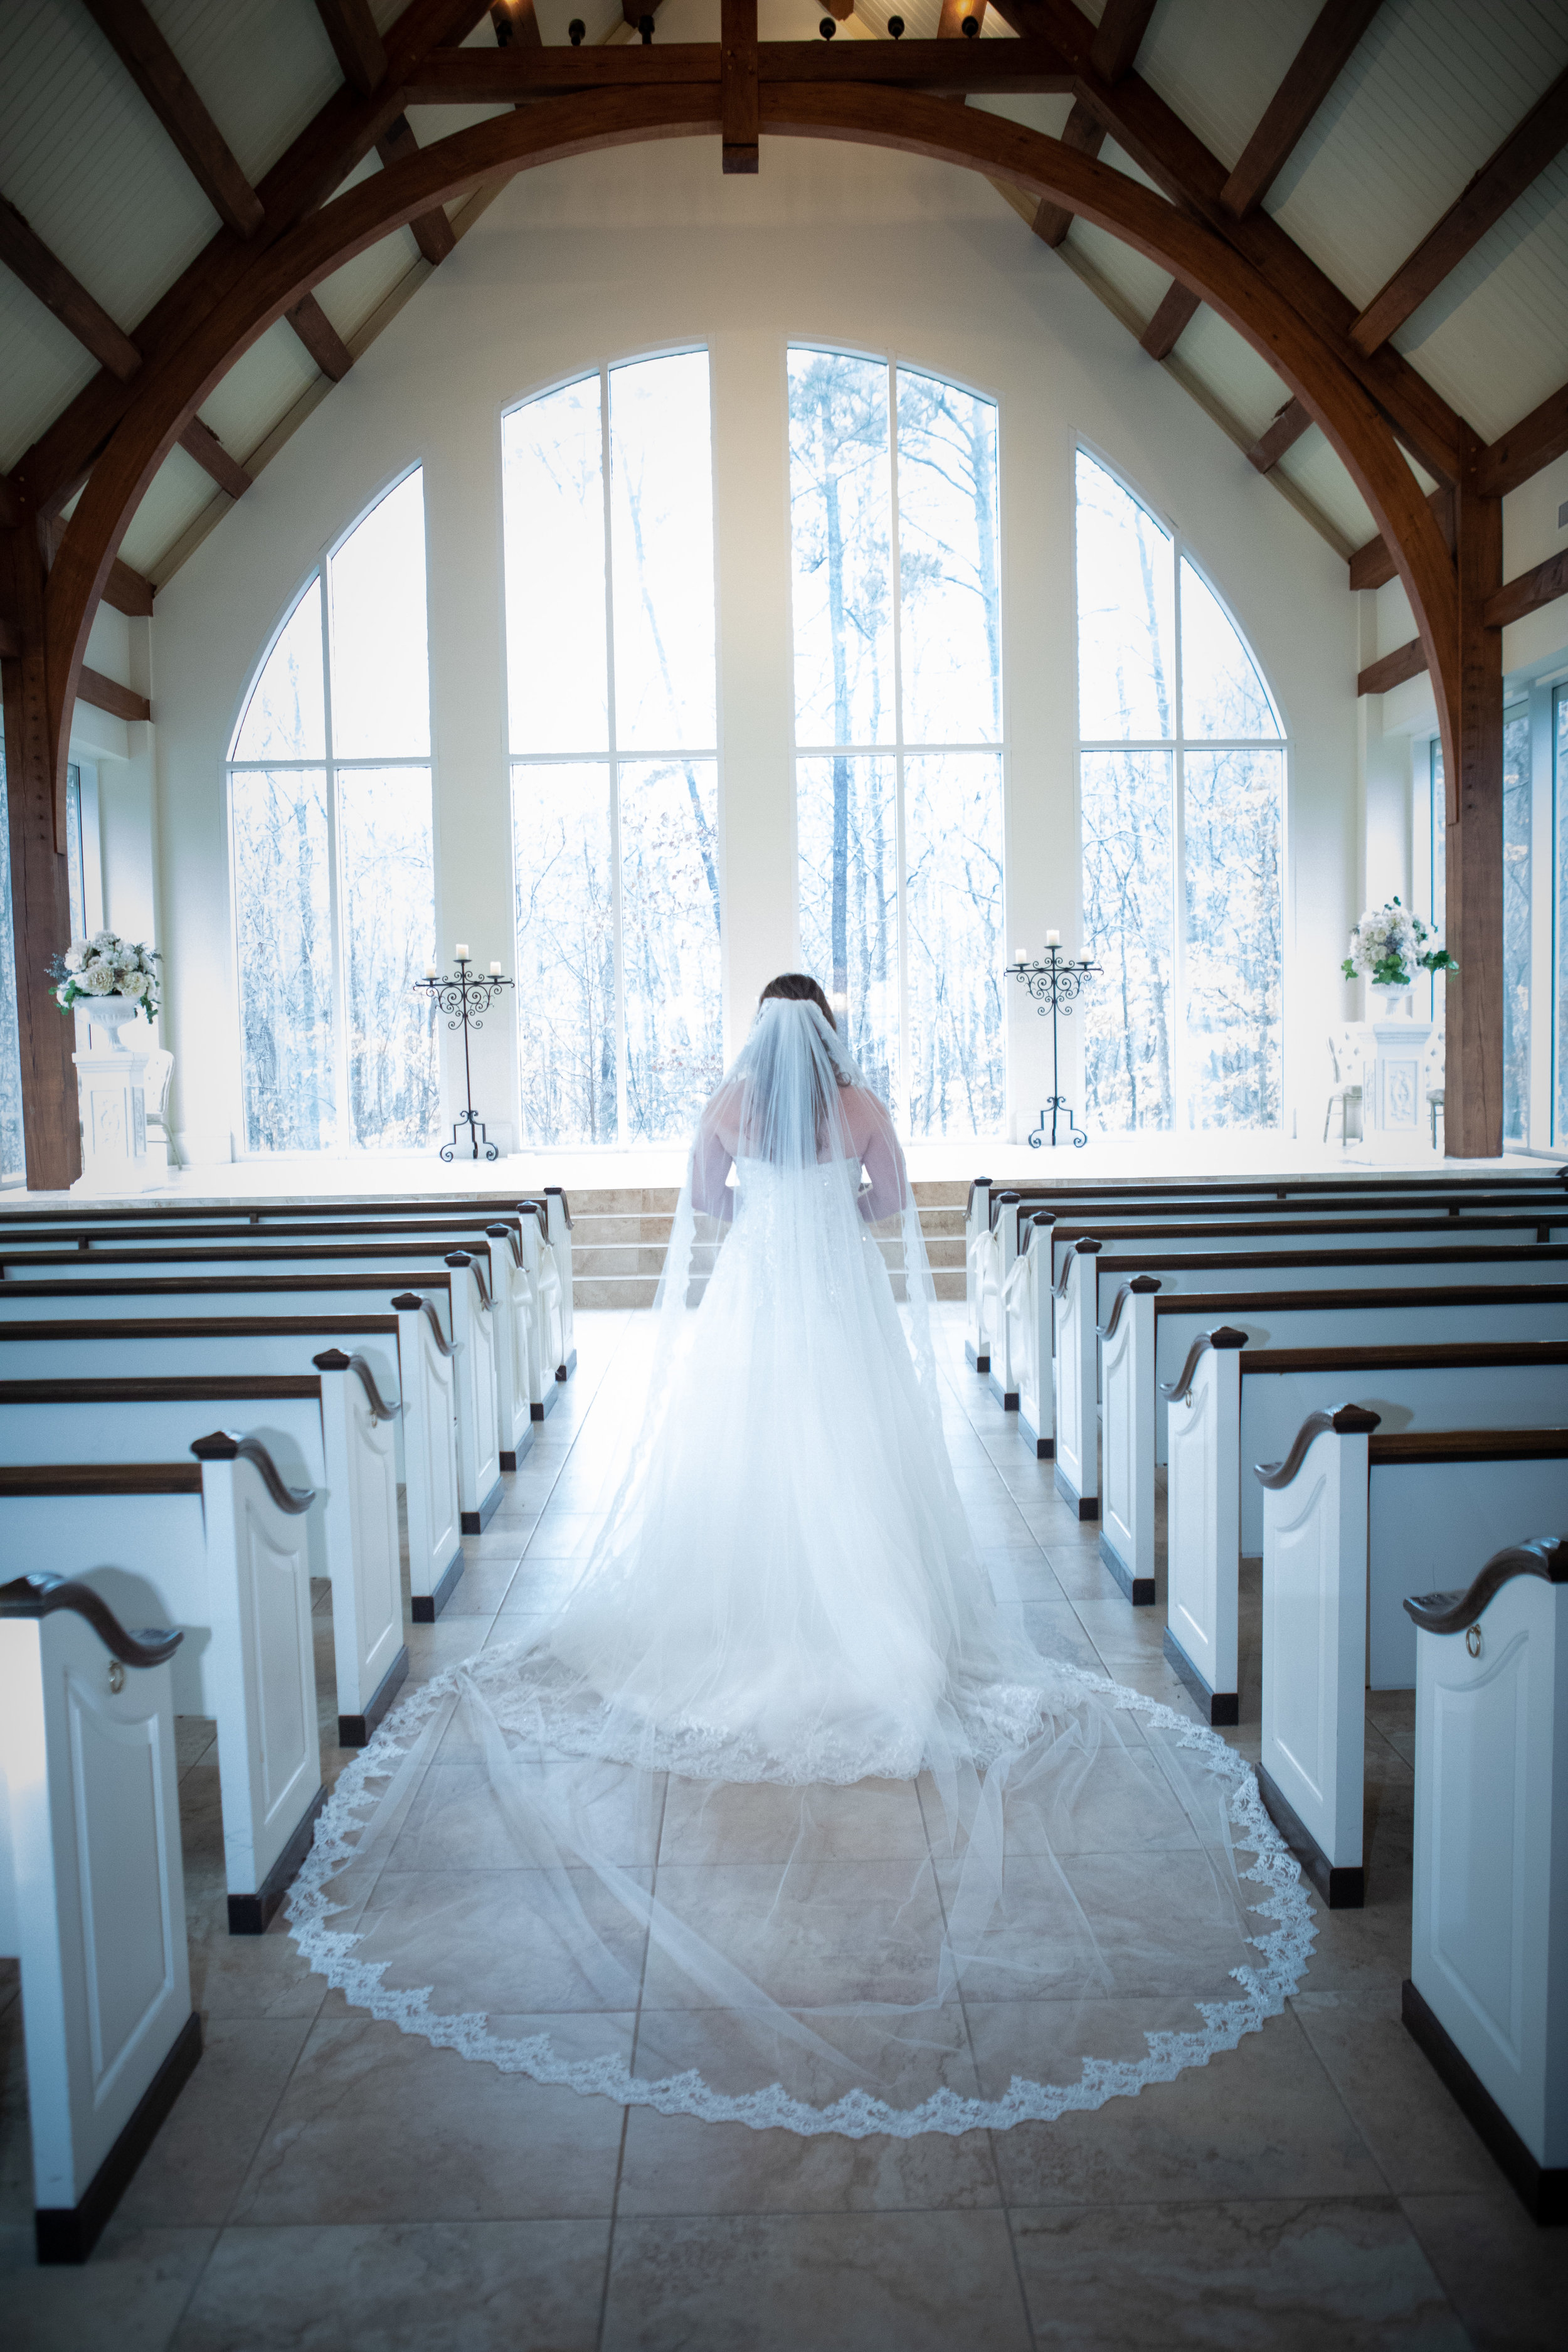 Photography by the Atlanta wedding photographers at AAW